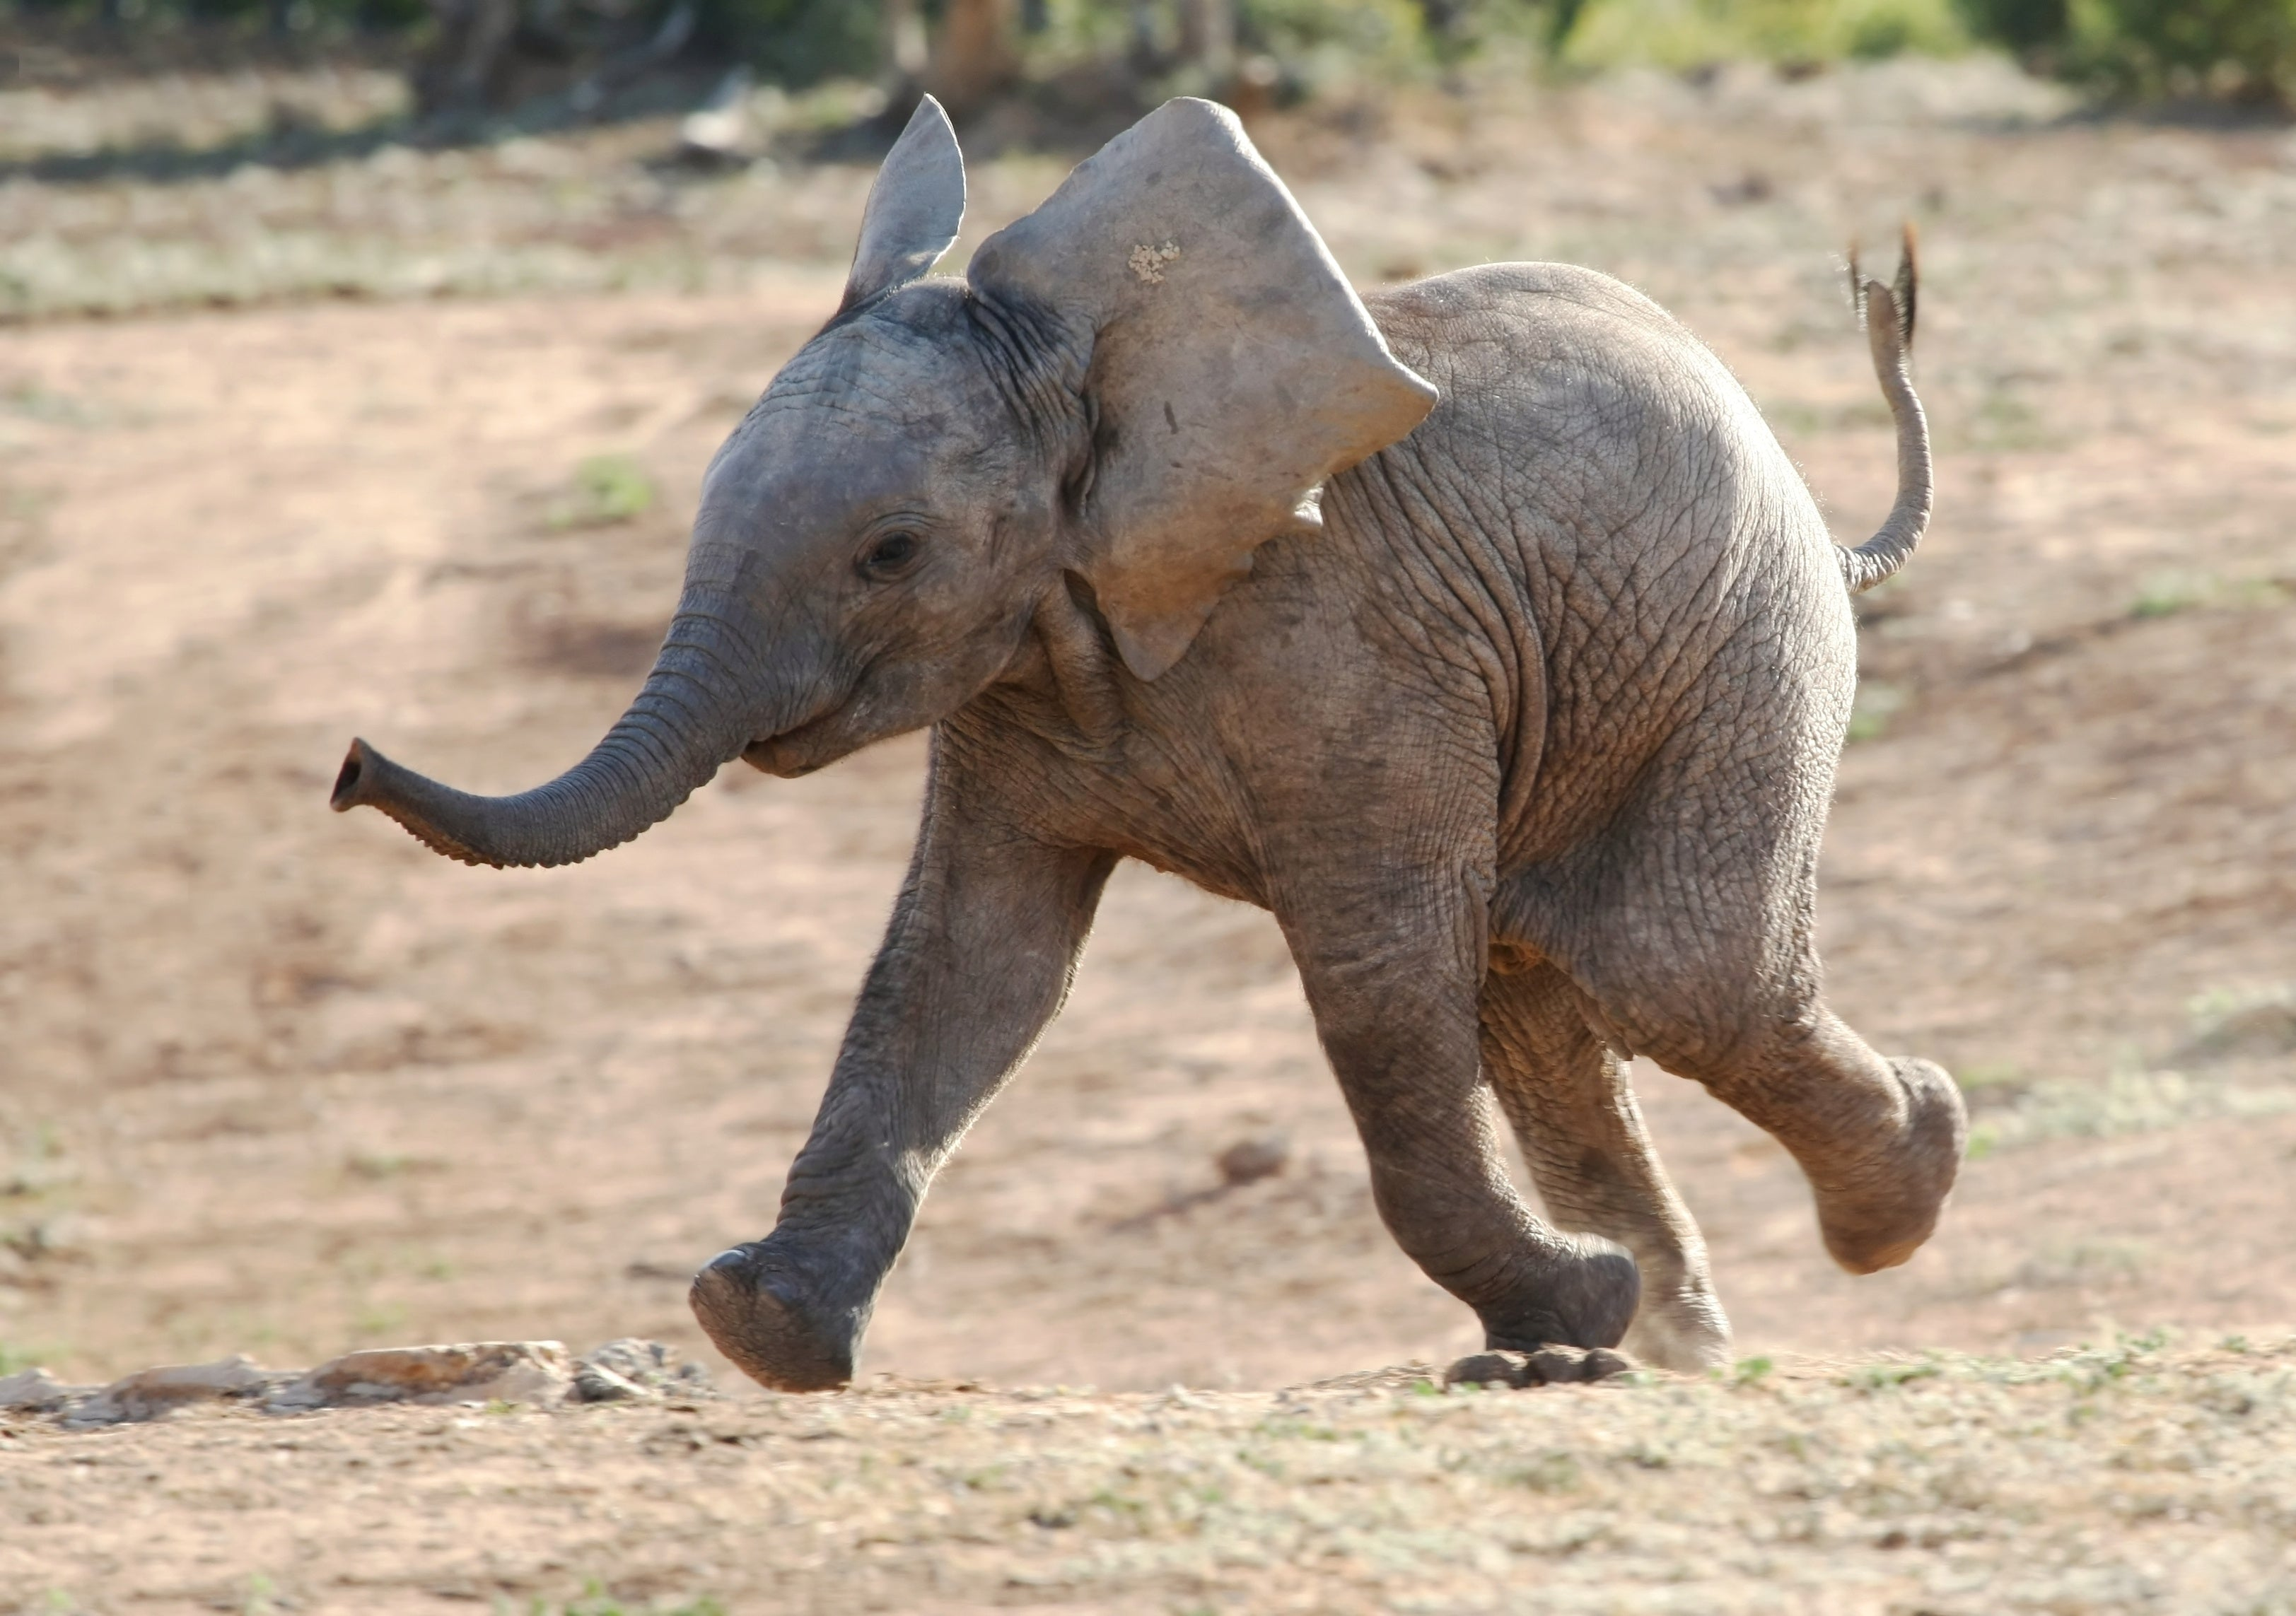 Baby elephant running and playing